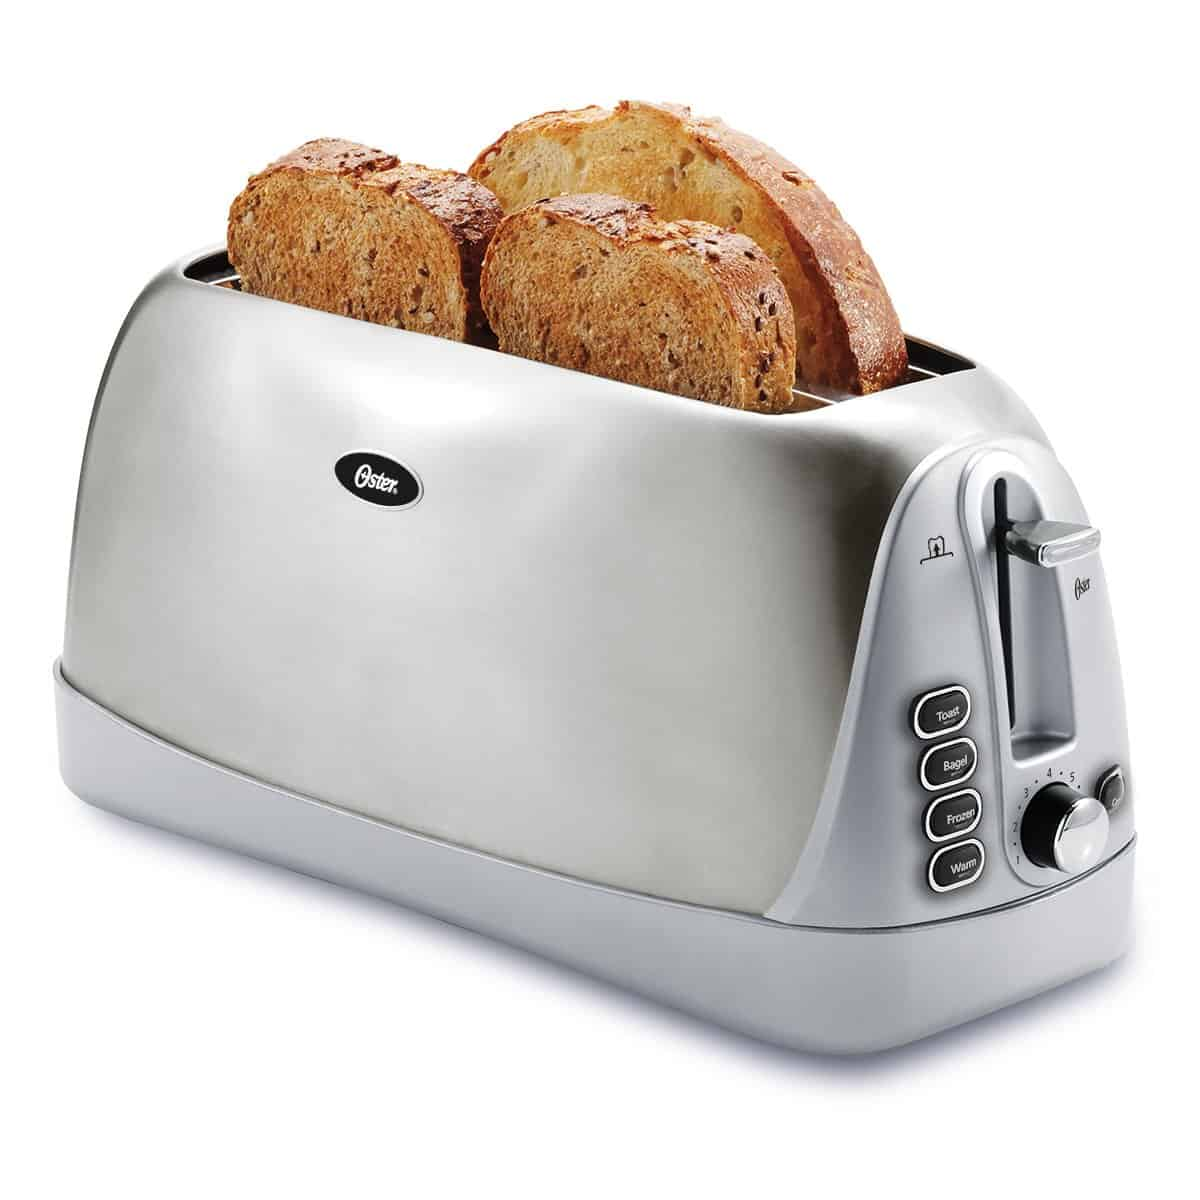 silver 4 slice toaster with bread